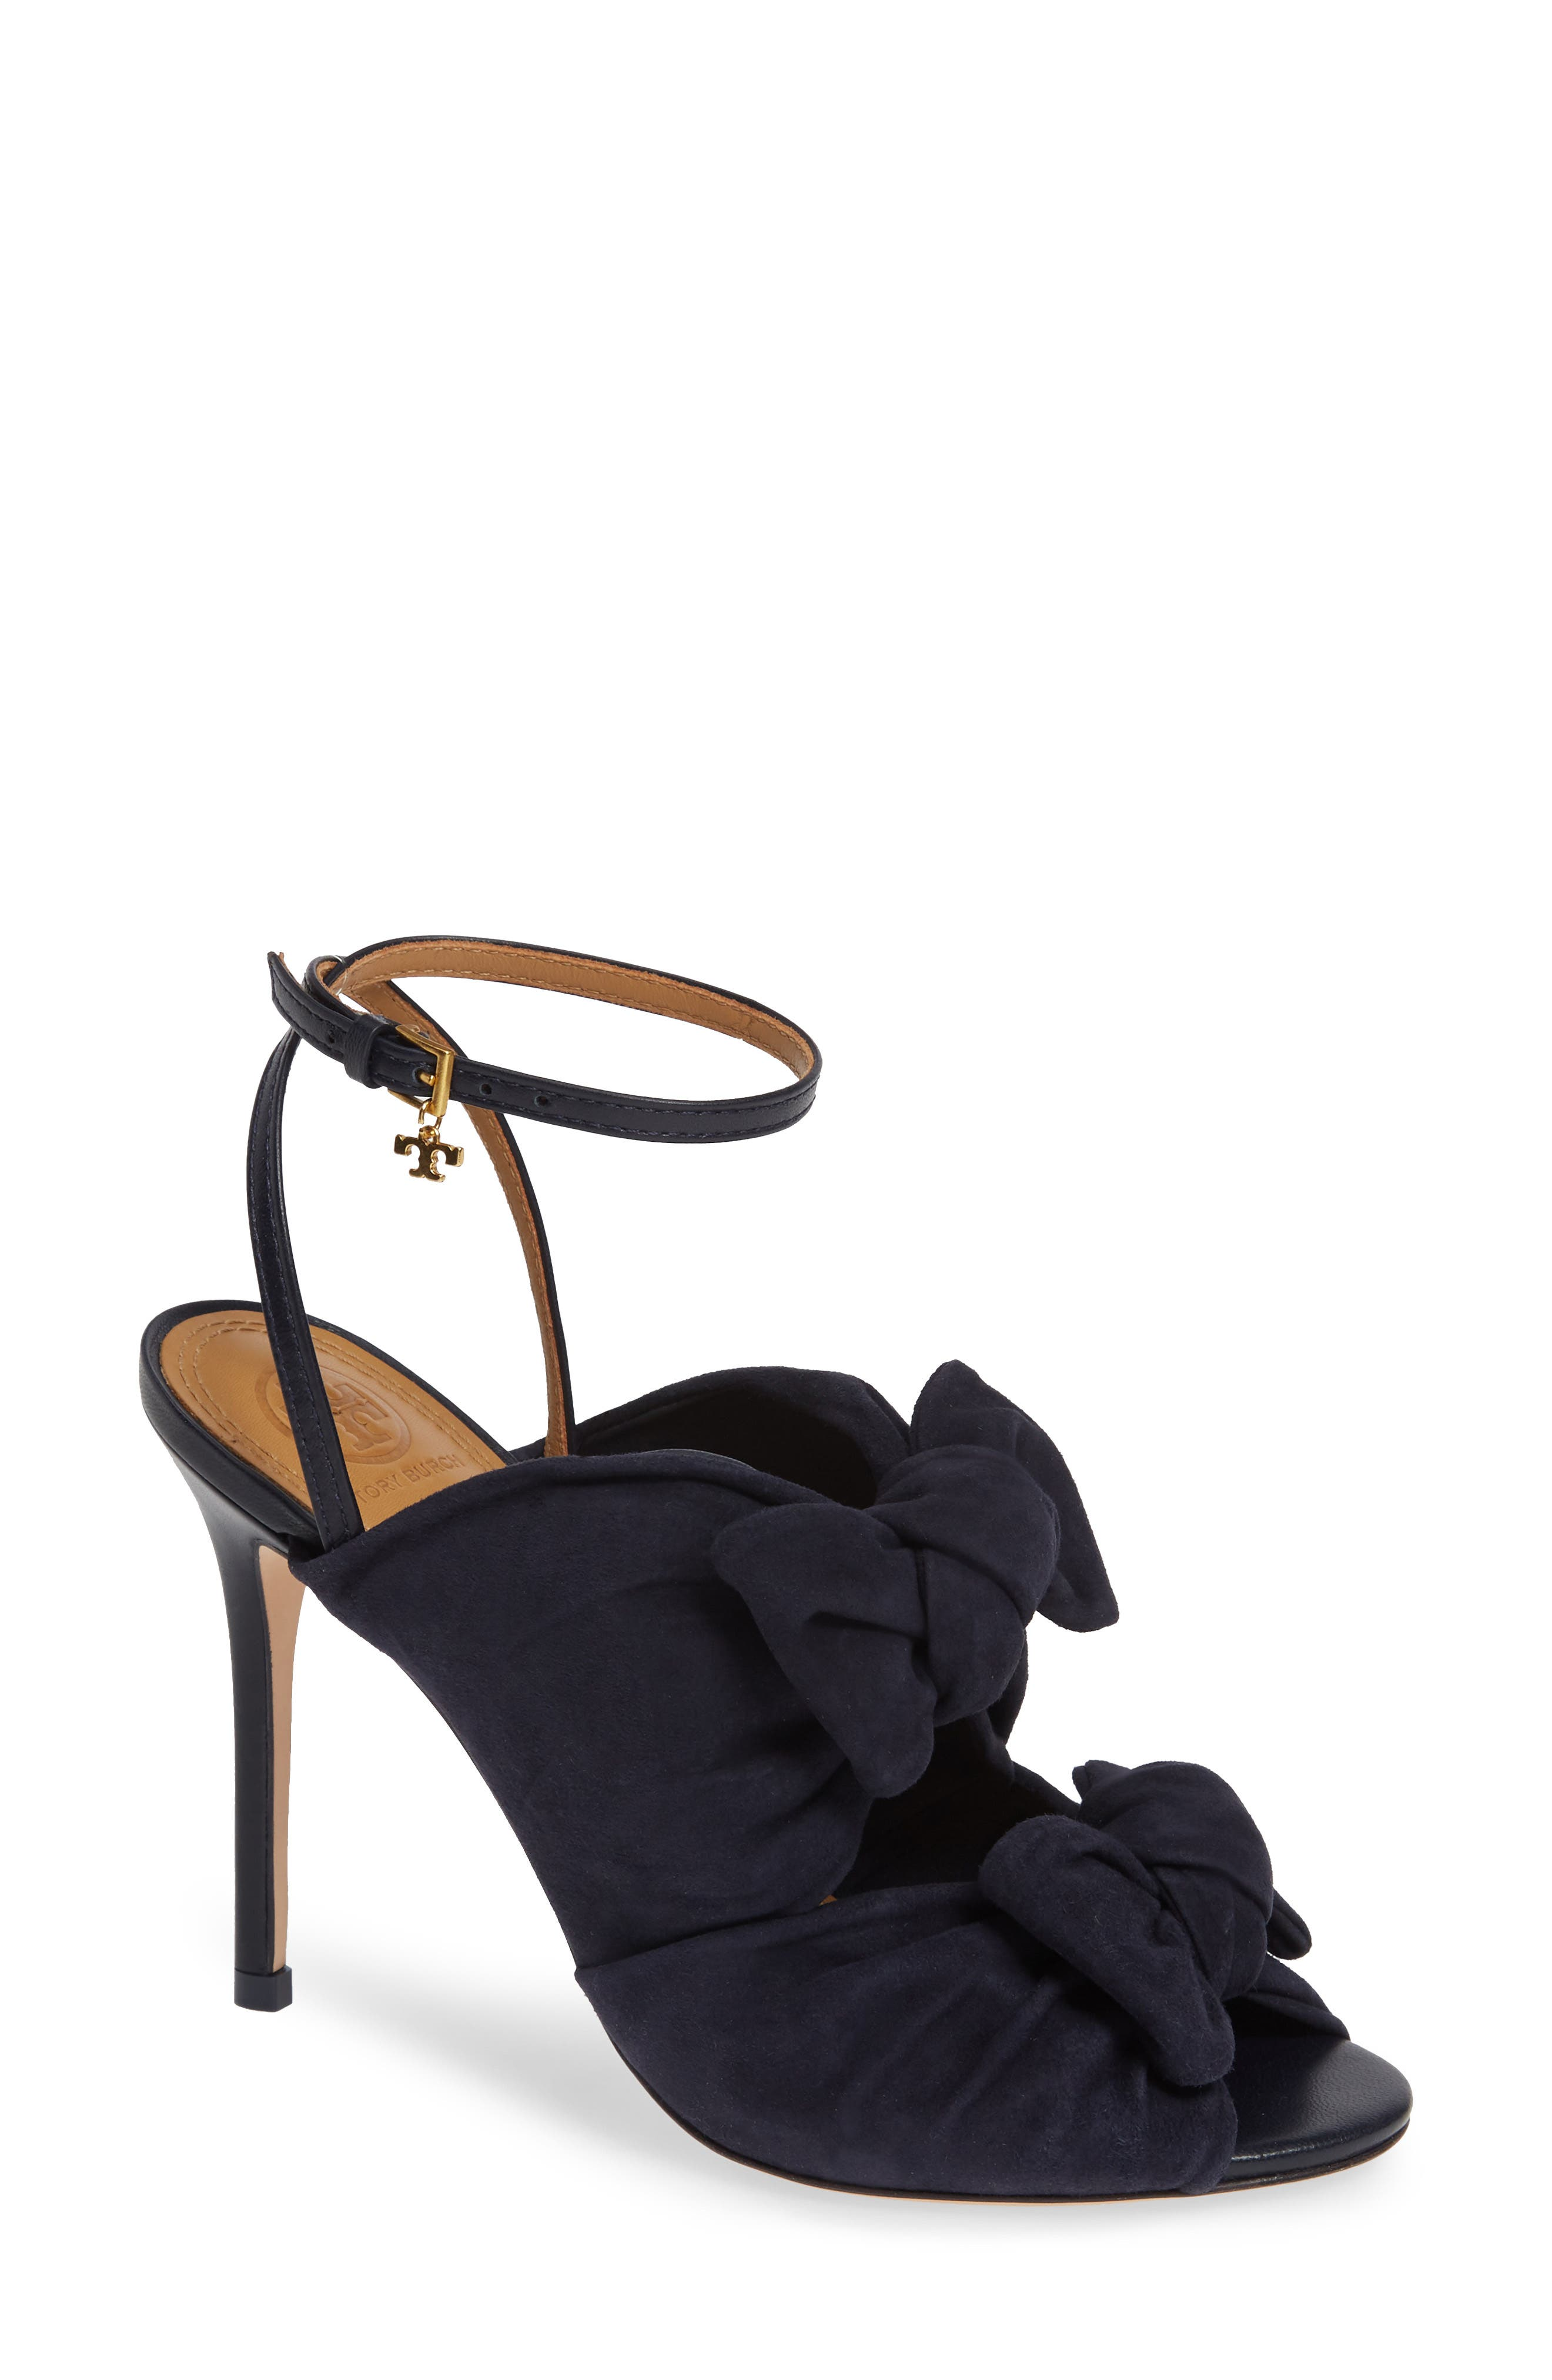 Tory Burch Eleanor Knotted Sandal- Blue